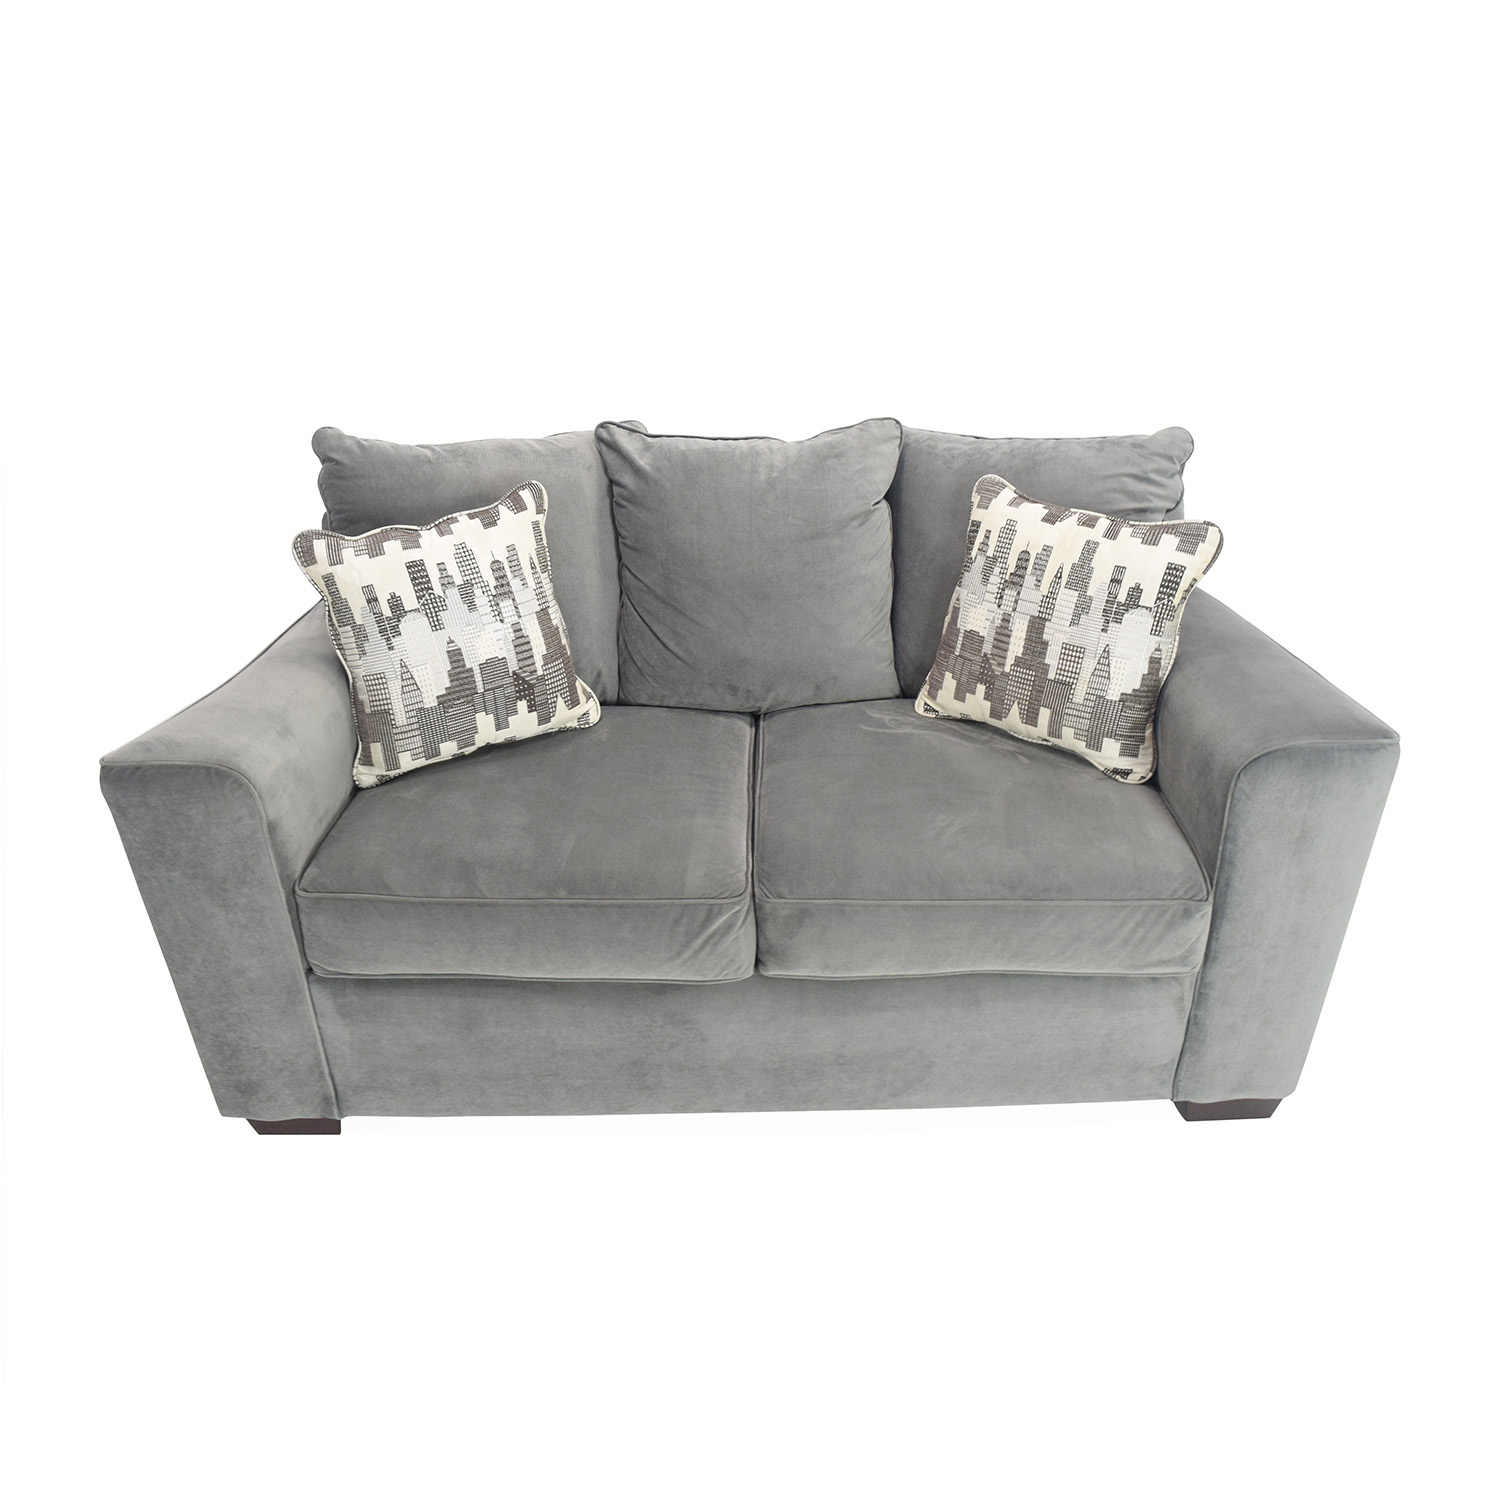 res pinterest room furniture kennedy bob sofa mitchell spaces hi morning pin loveseat